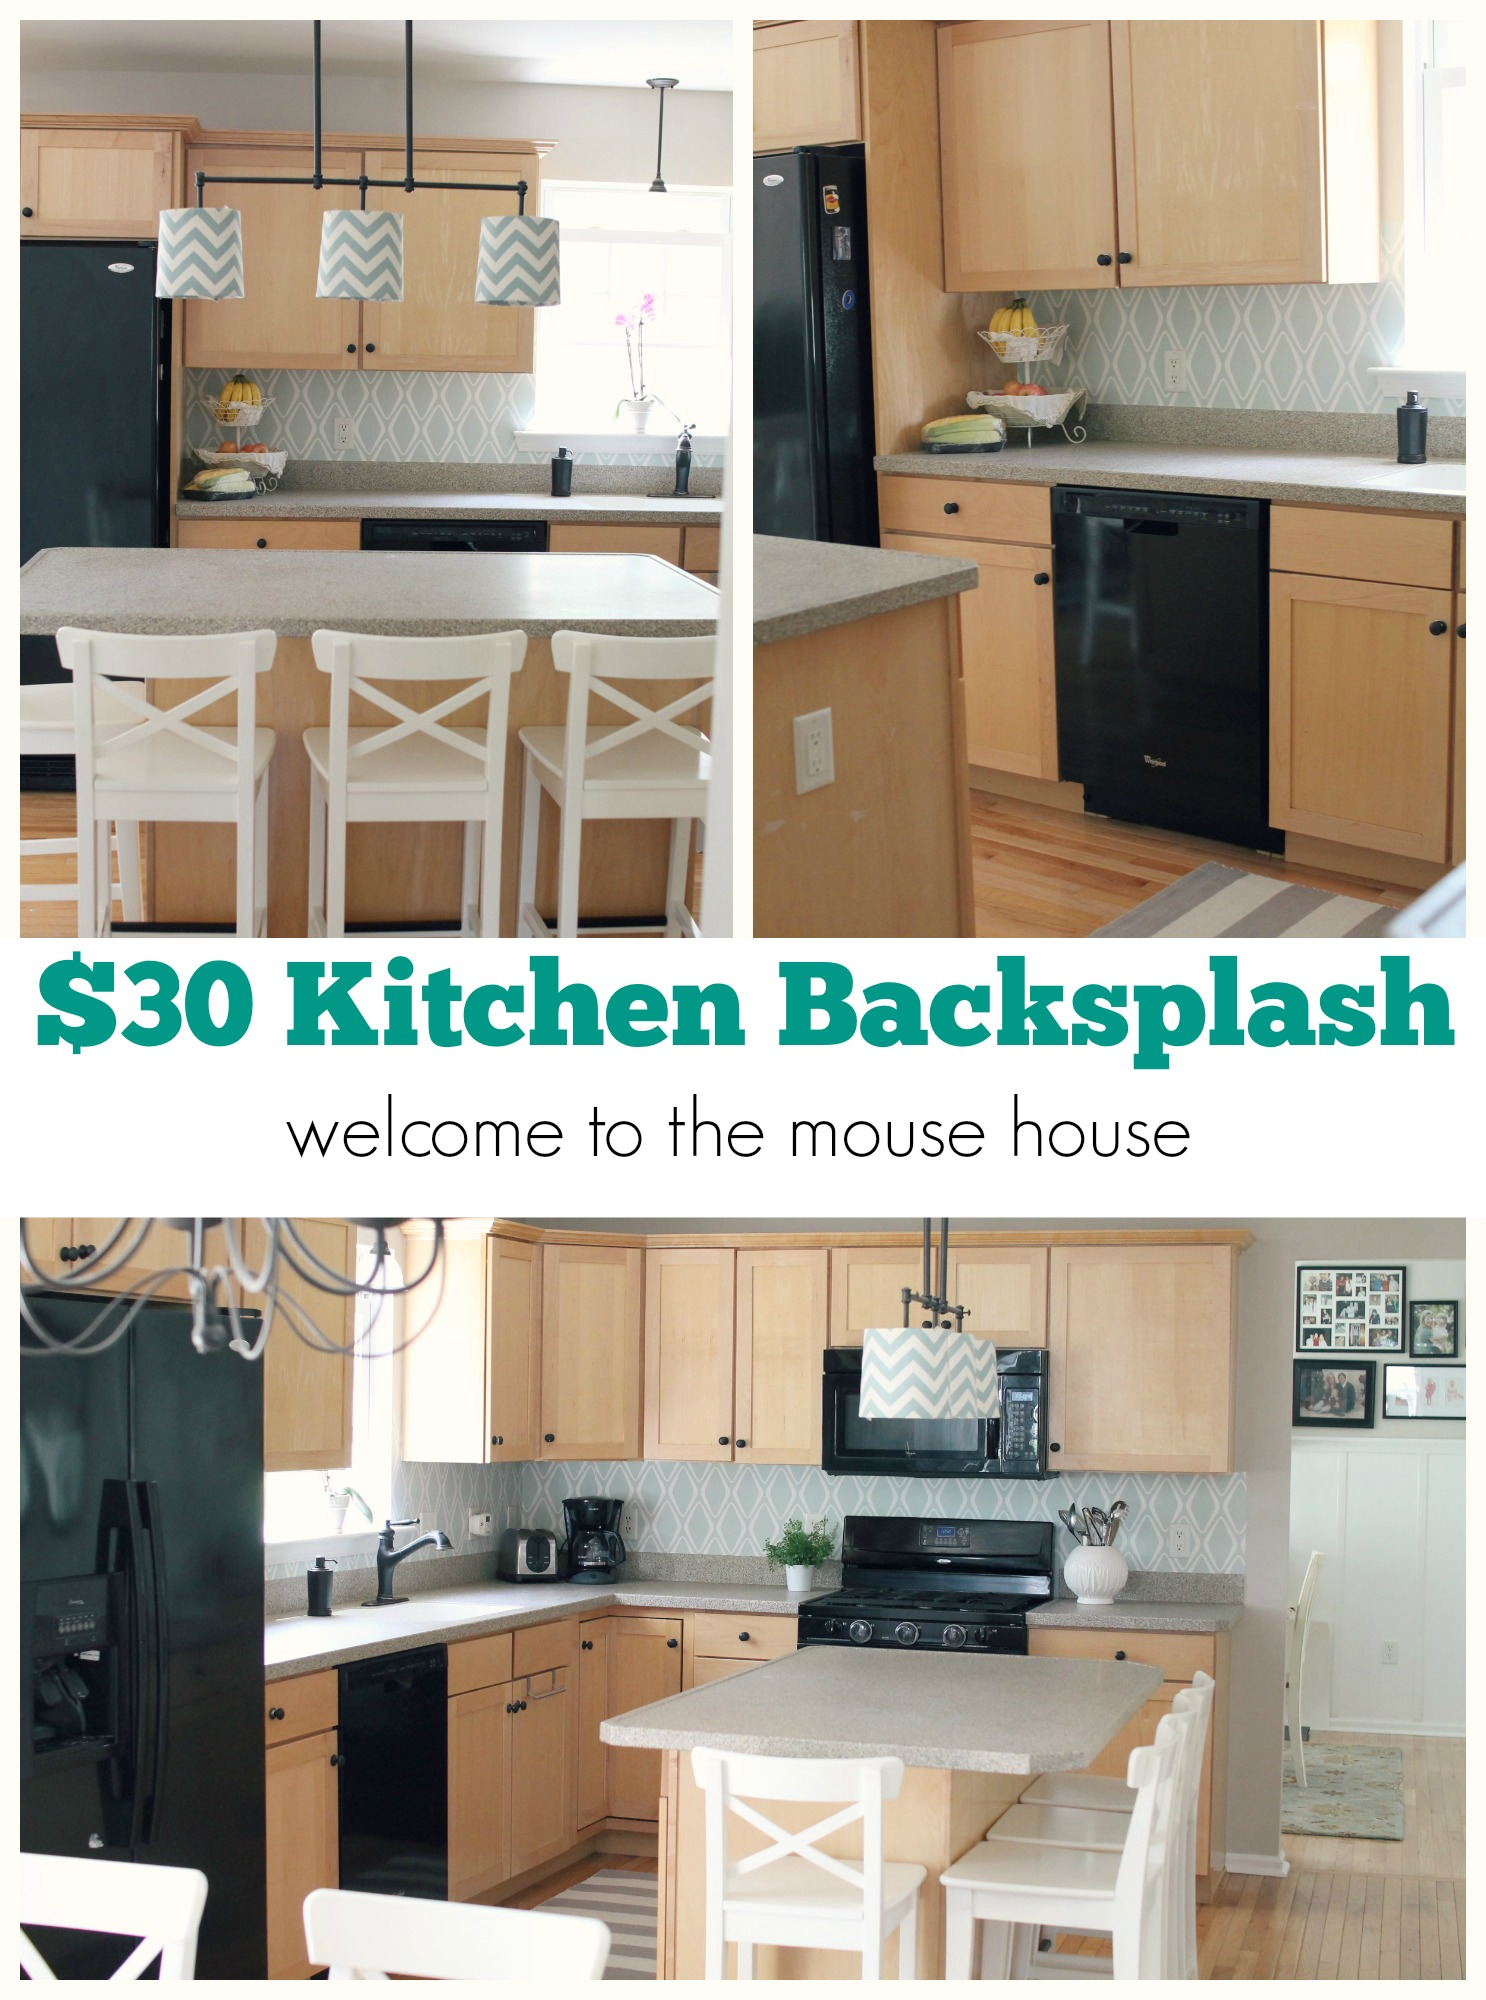 Easy kitchen backsplash 30 target wallpaper for Kitchen backsplash wallpaper